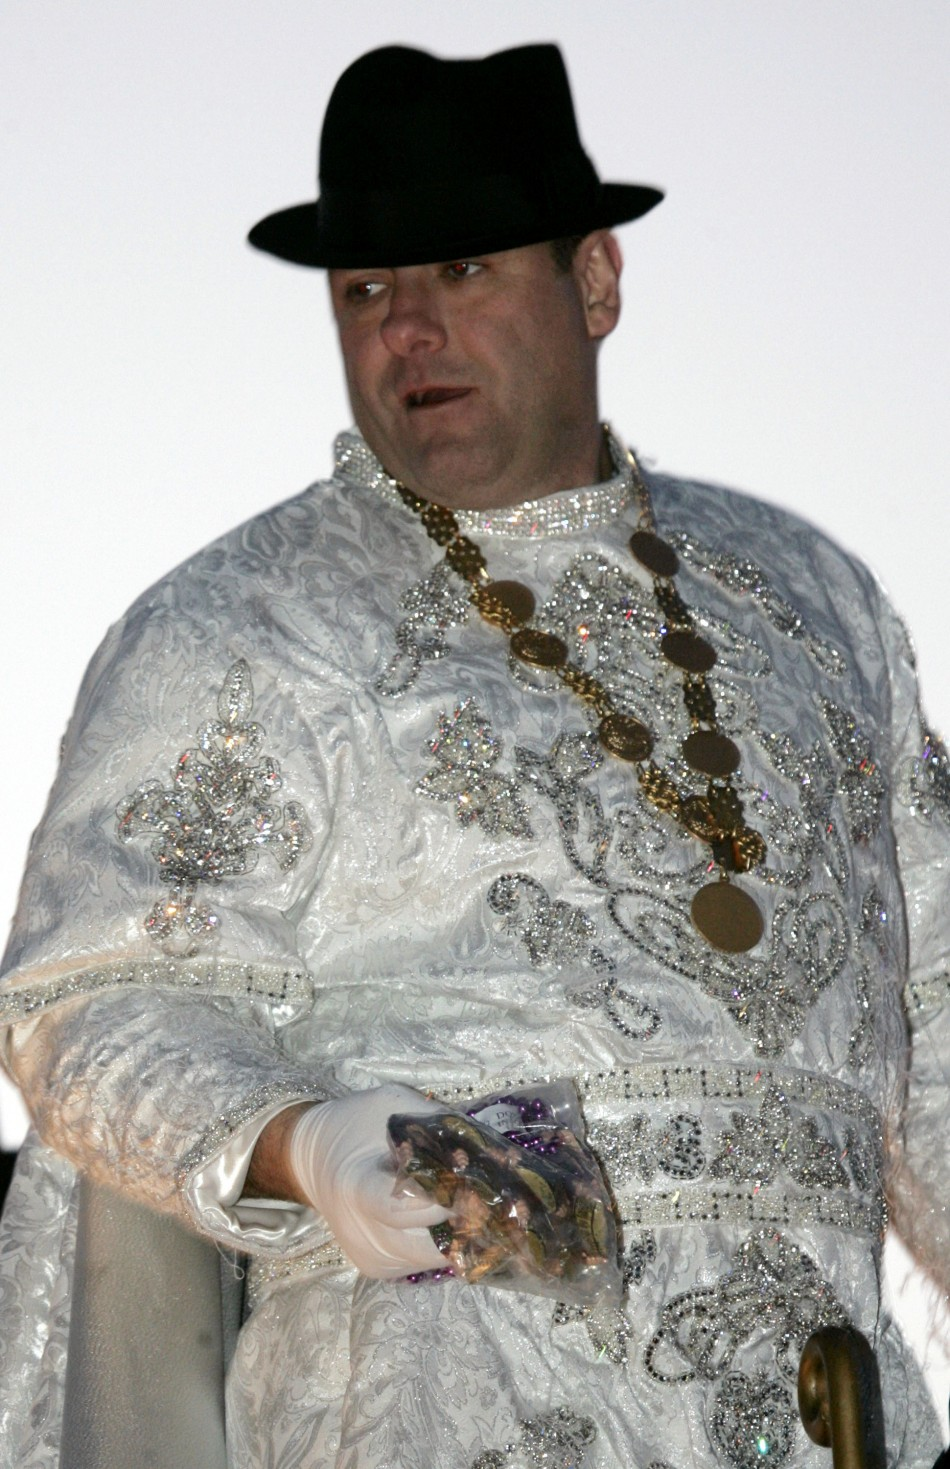 James Gandolfini, in unfamiliar getup, throws beads to revellers at a New Orleans street parade